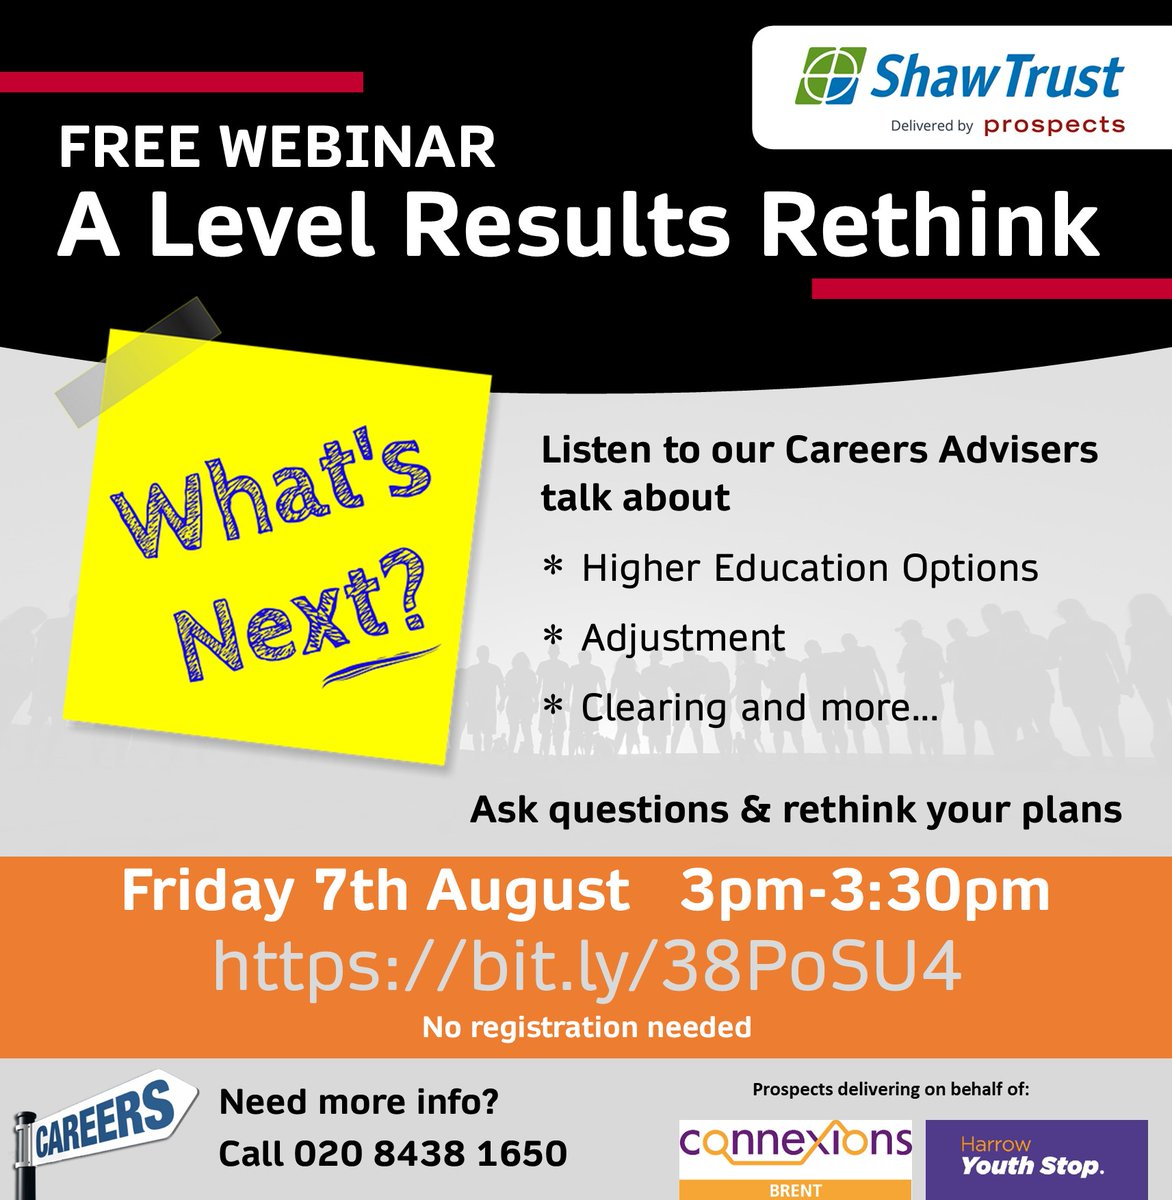 Don't miss the A Level results rethink webinar - TODAY at 3pm Set a reminder and join us via https://bit.ly/38PoSU4  #CareersAdvice for teenagers #London borough of #Brent  020 8438 1650  #JobSearch #University #Degree #GapYear #Apprenticeship #BrentWebinars #Jobspic.twitter.com/uXxQdJhu8B